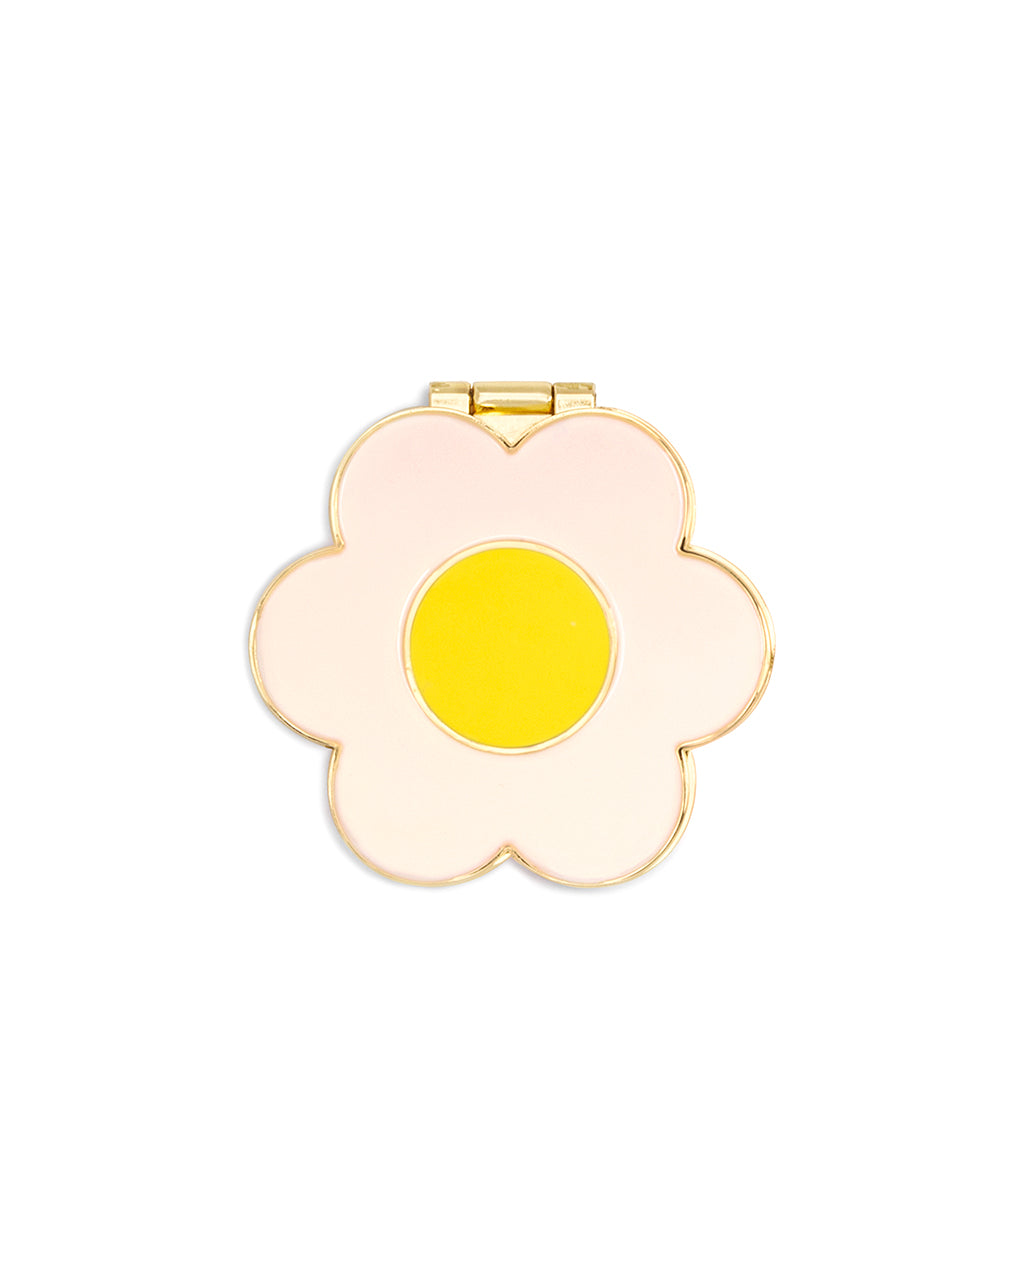 The Lookin' Good Compact Mirror comes in a cute white daisy design.